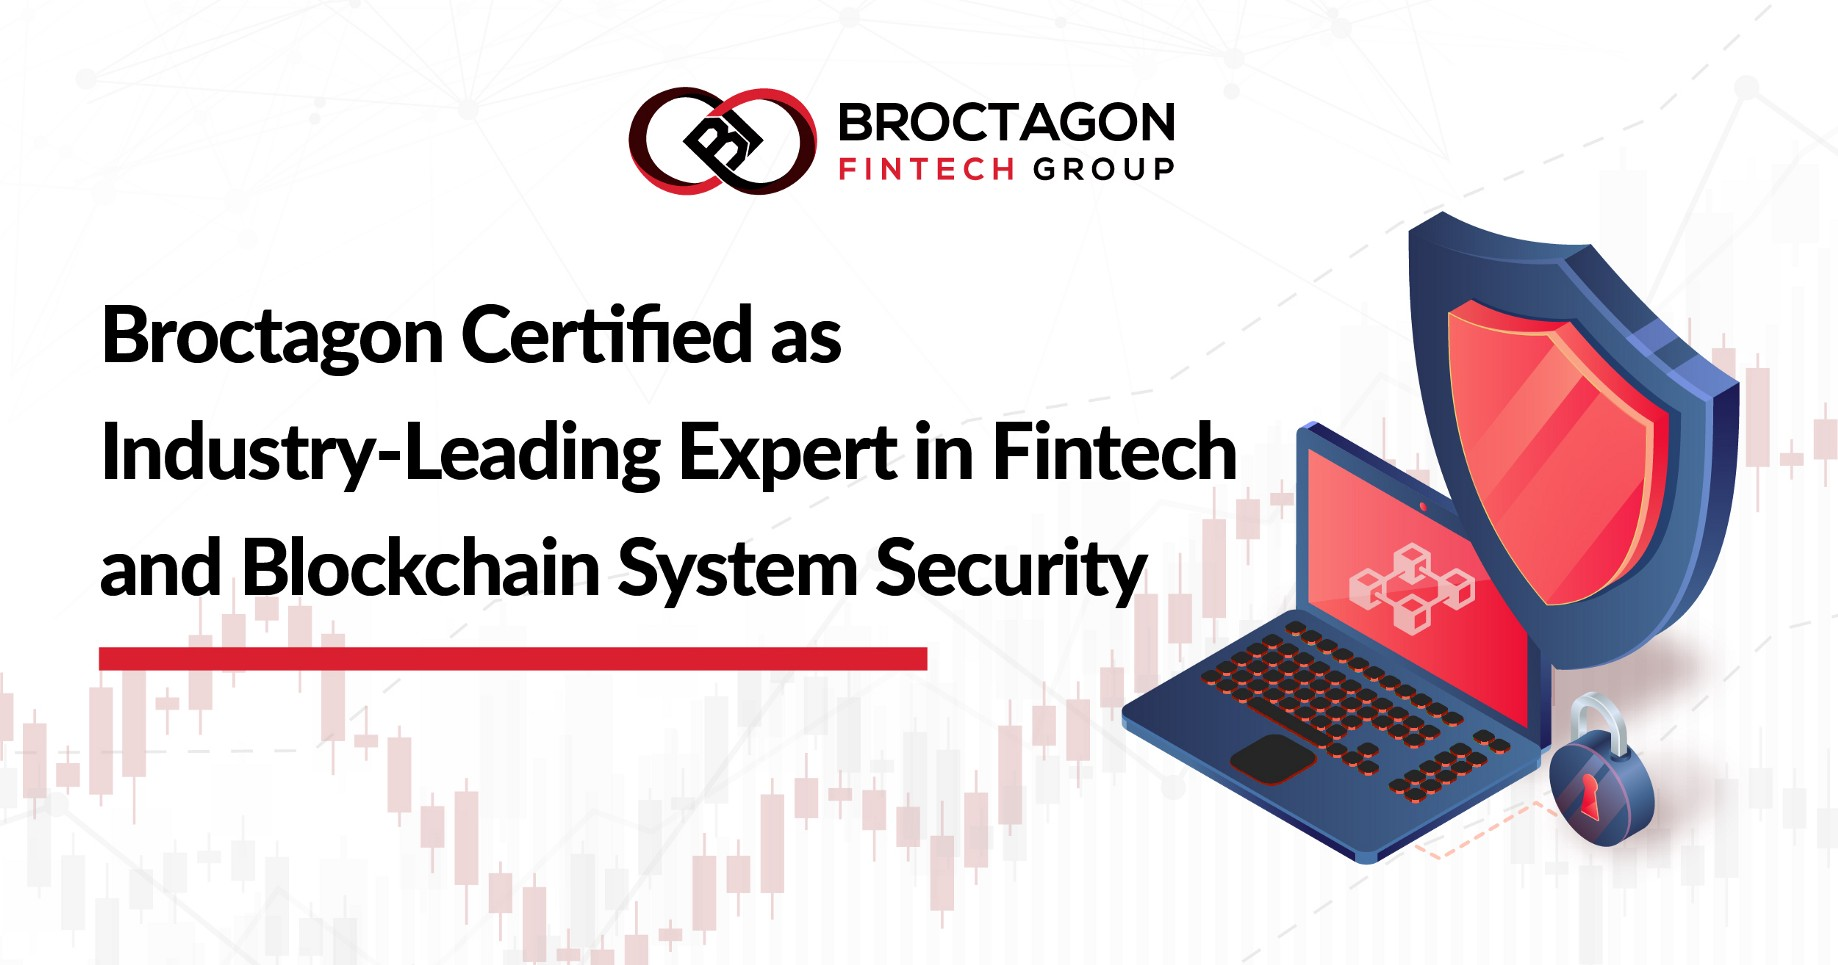 Broctagon Certified as Industry-Leading Expert in Fintech and